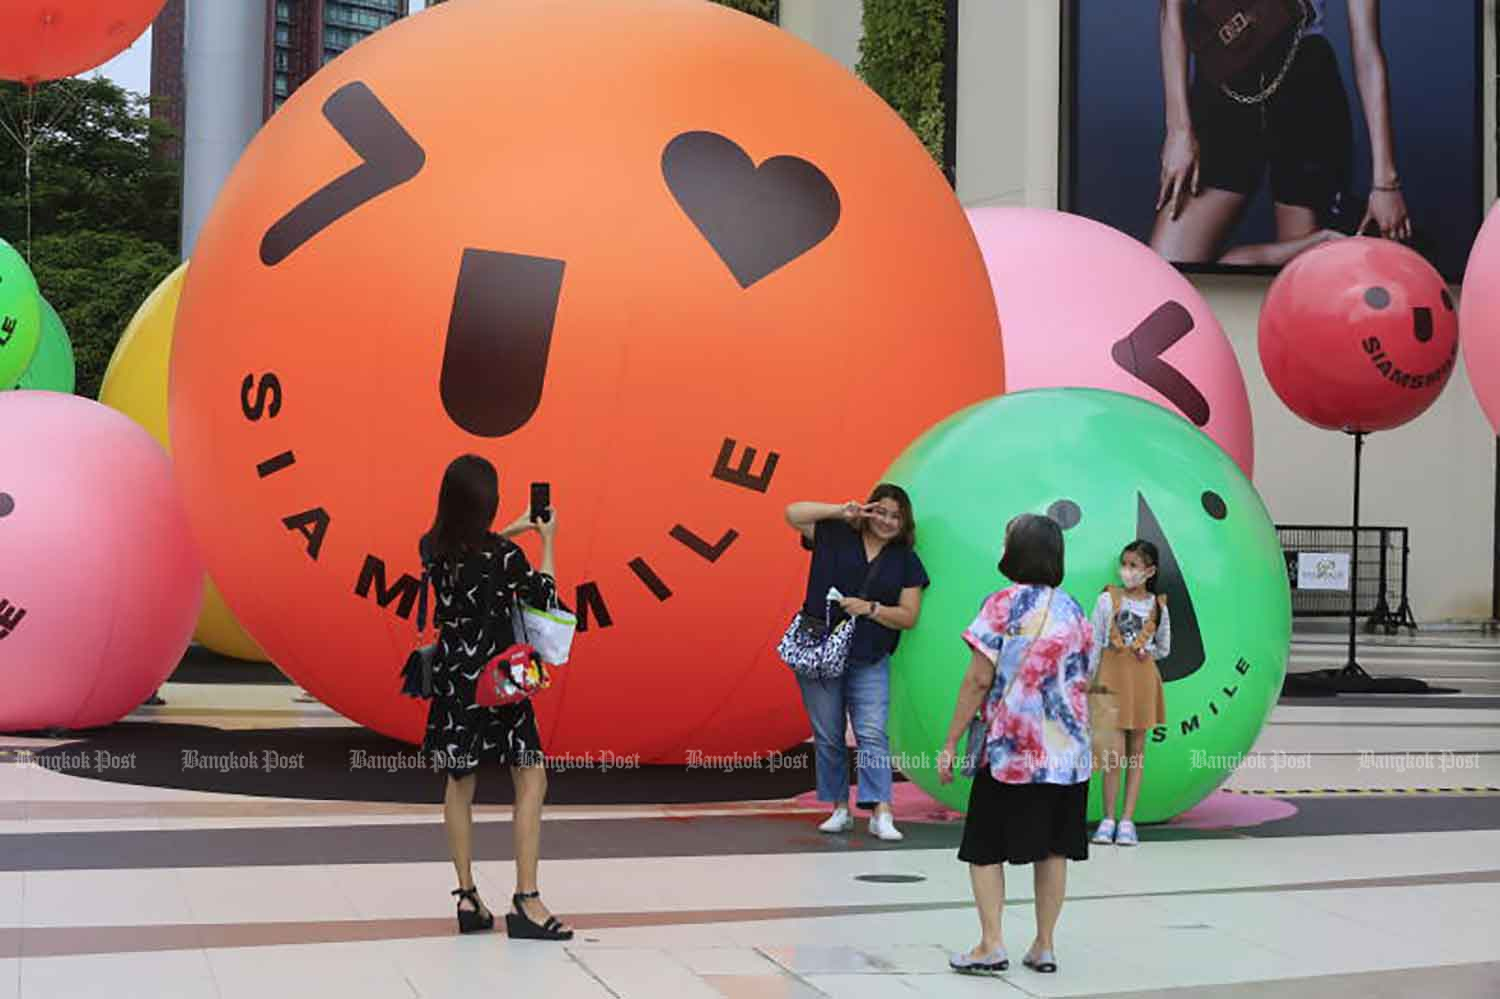 People take photos in front of Siam Paragon shopping centre in Bangkok's Pathumwan district of Bangkok on Tuesday. Officials plan to allow shopping centres and other venues to organise events with at least 50 participants on Saturday. (Photo: Pornprom Satrabhaya)